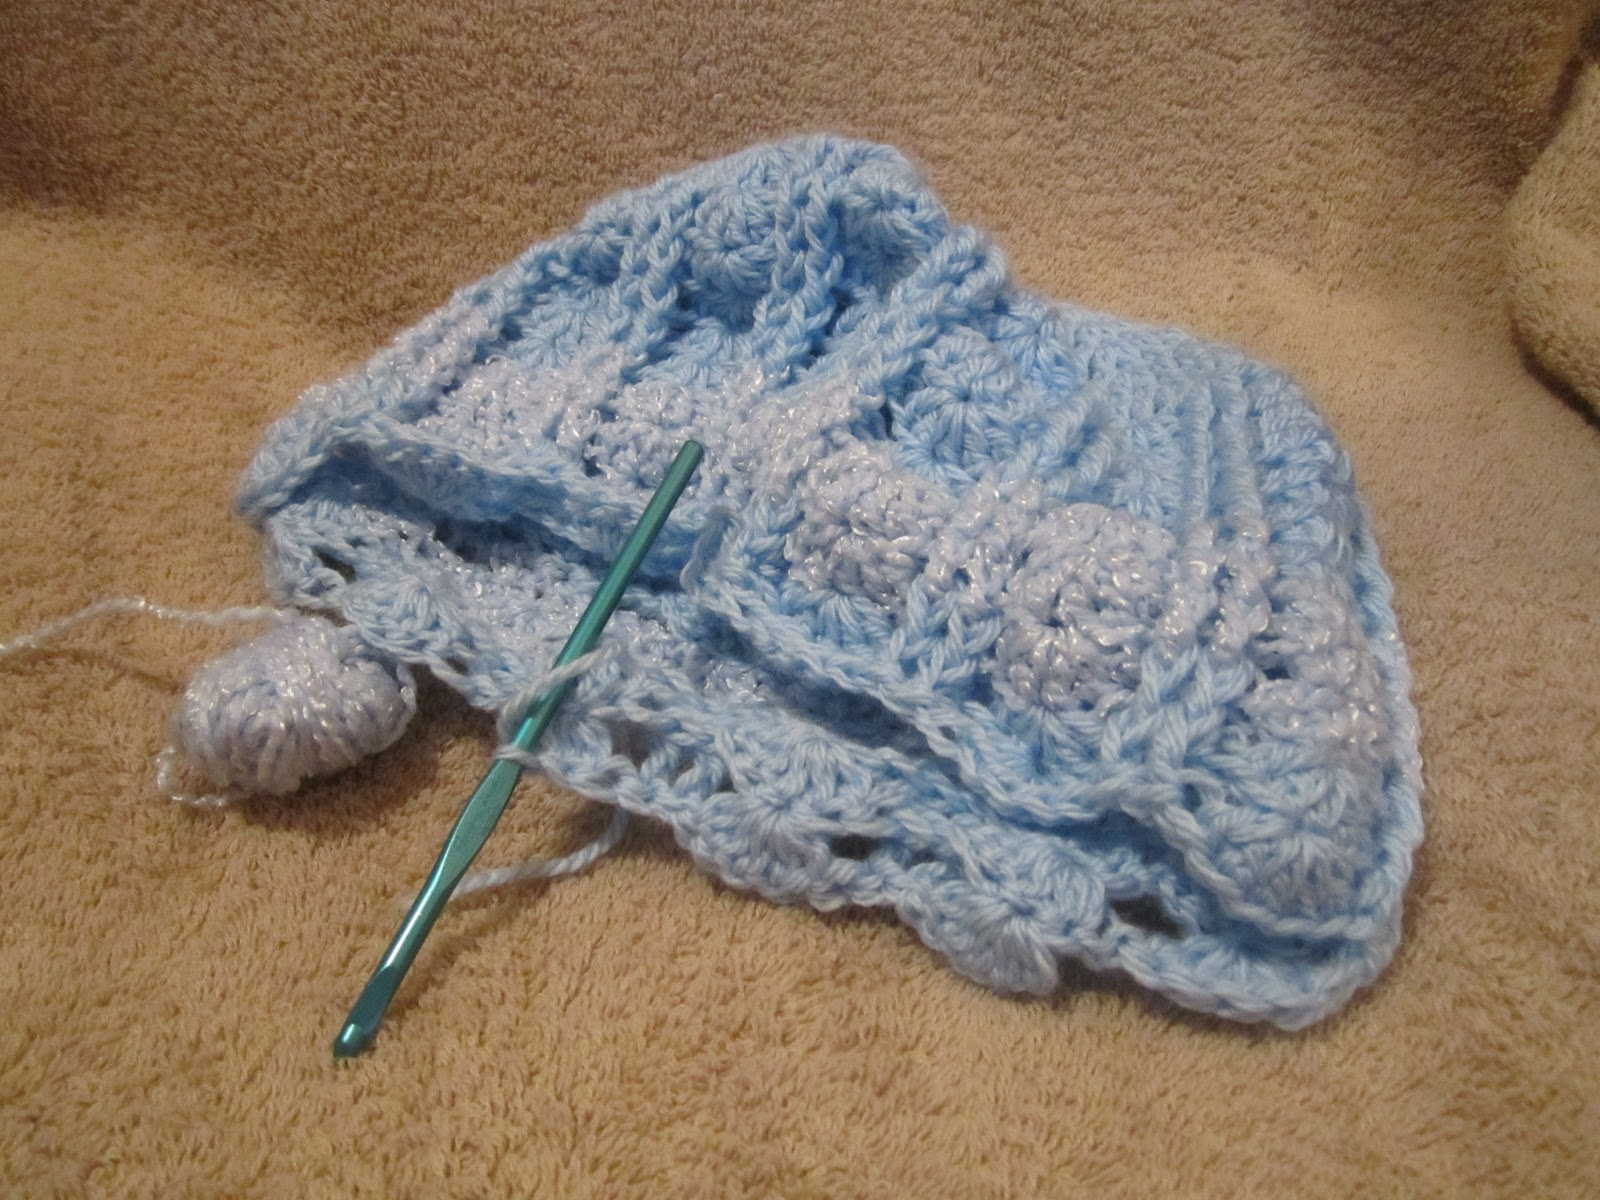 Crocheting Jobs : Crocheting Conversations: Job search and crocheting simultaneously!